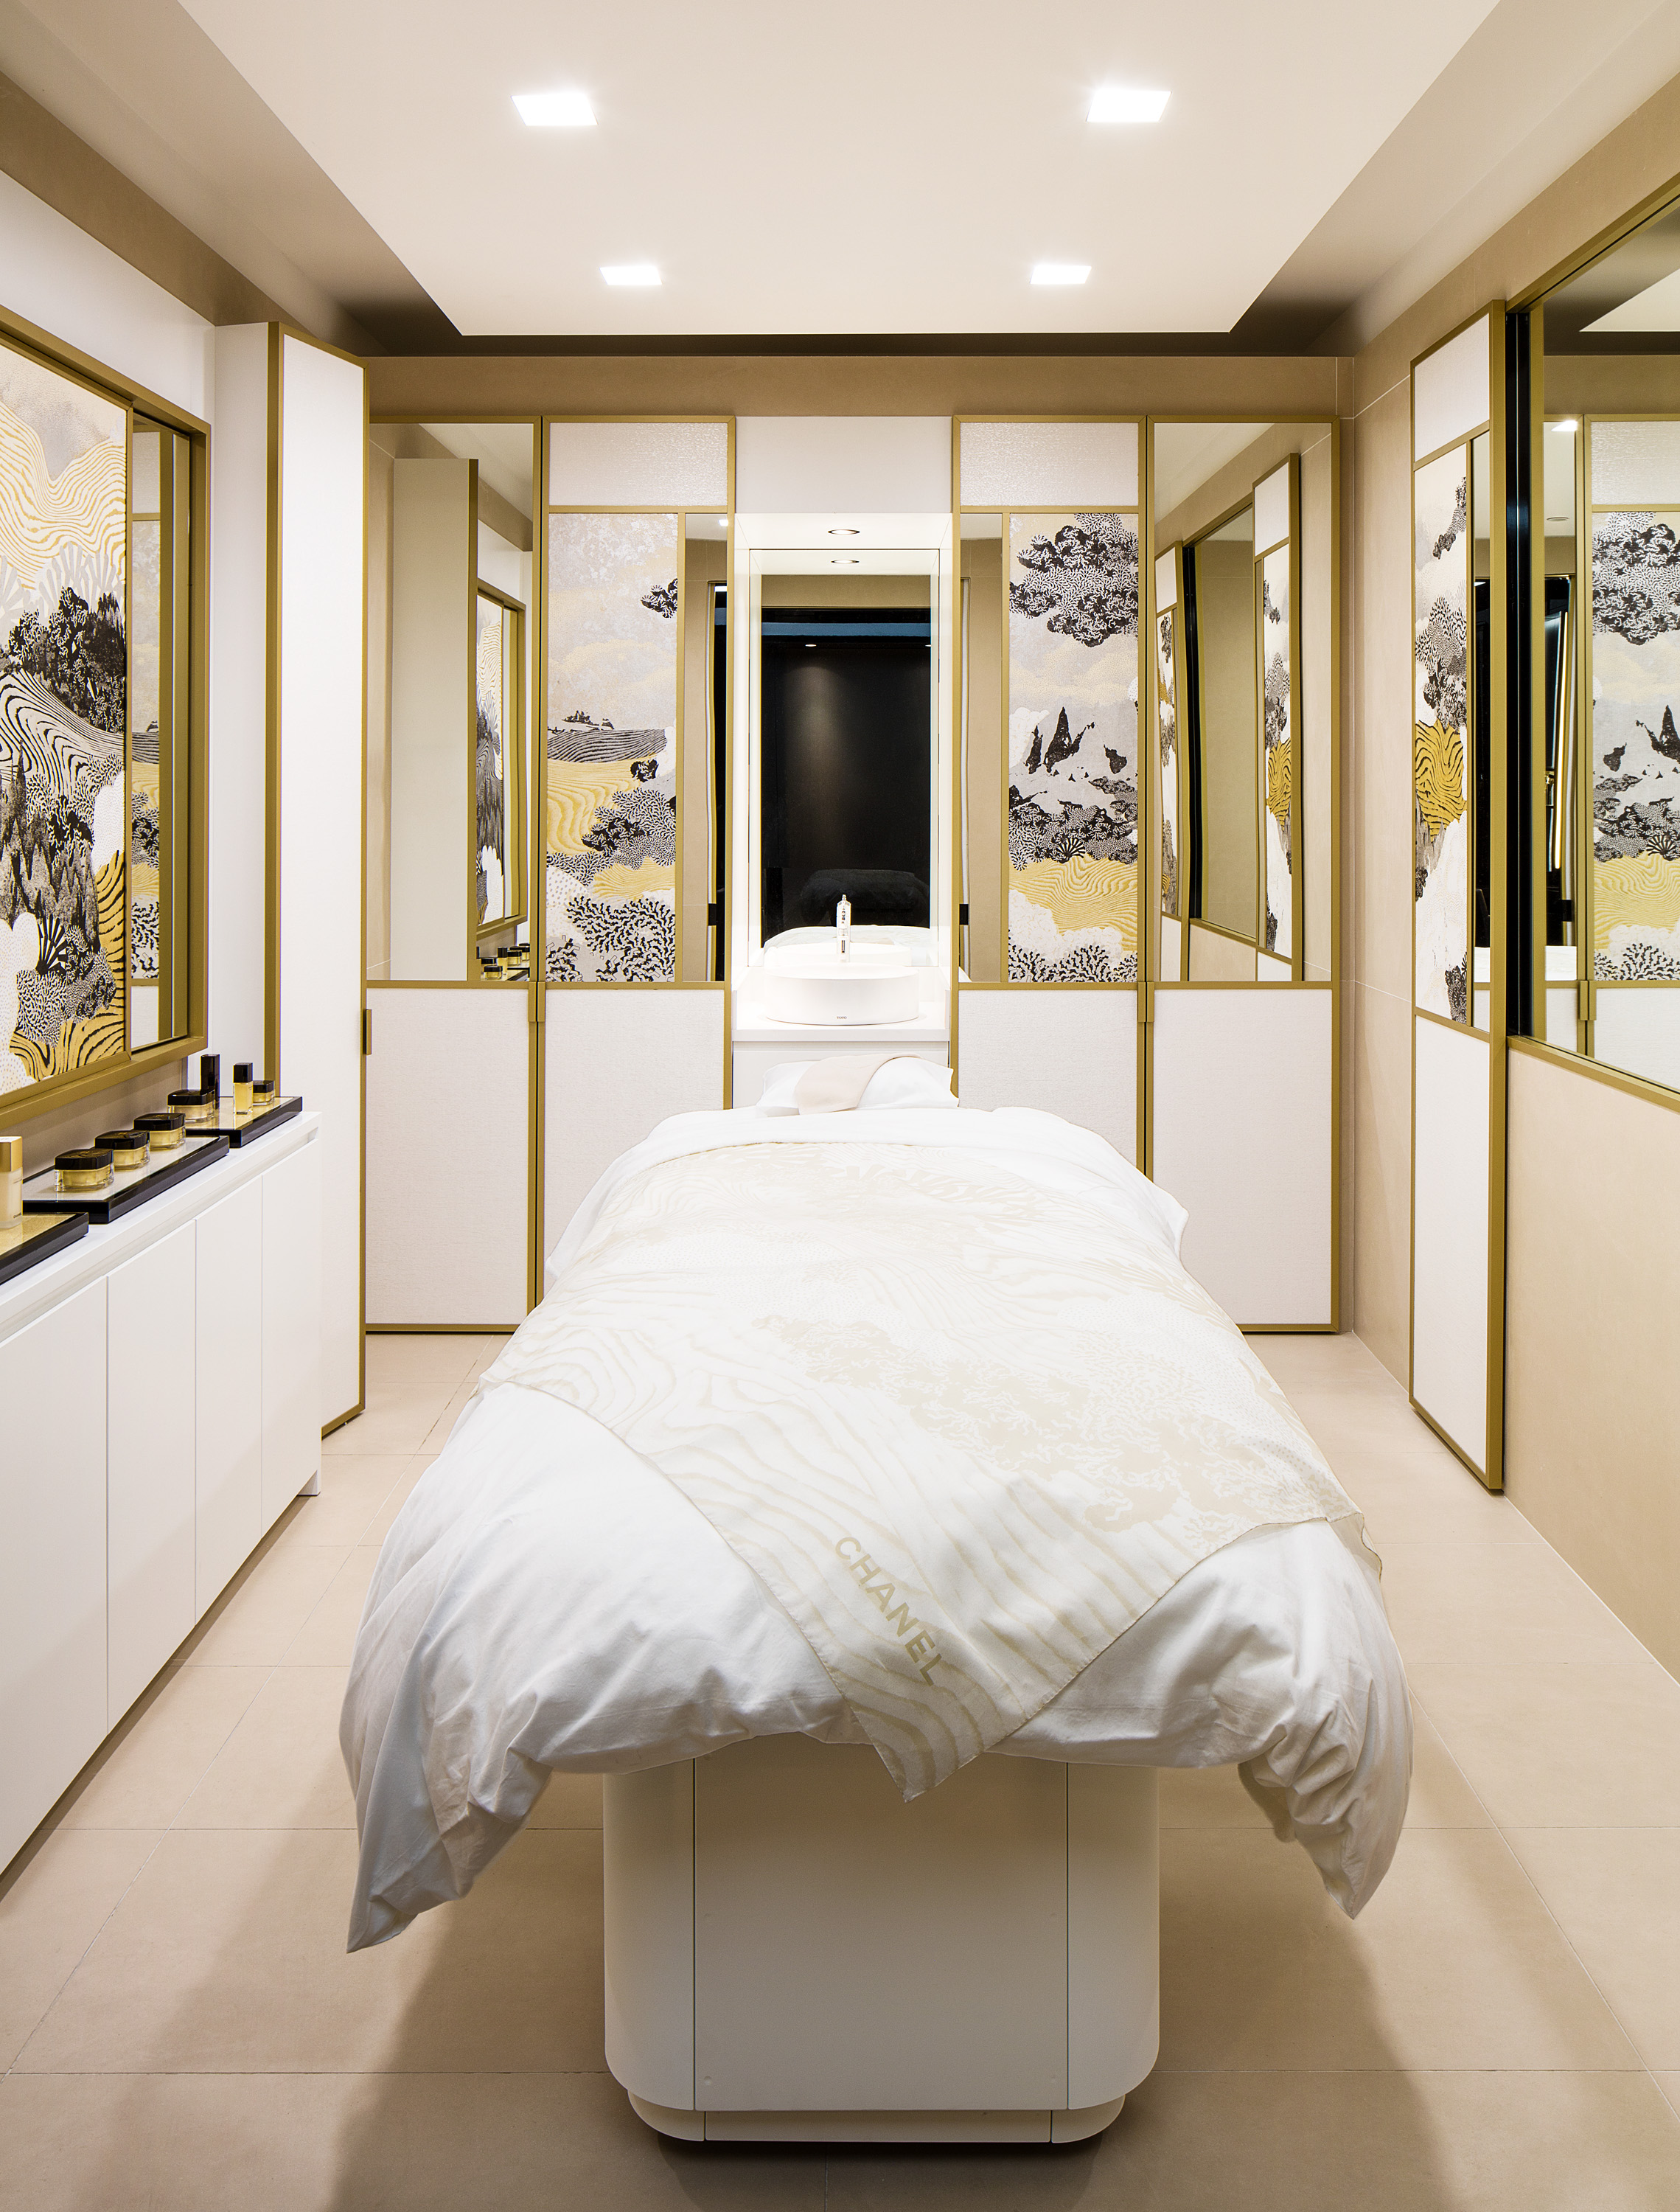 'Skincare cabine' in Toronto's new Chanel fragrance and beauty boutique. Photo: Chanel